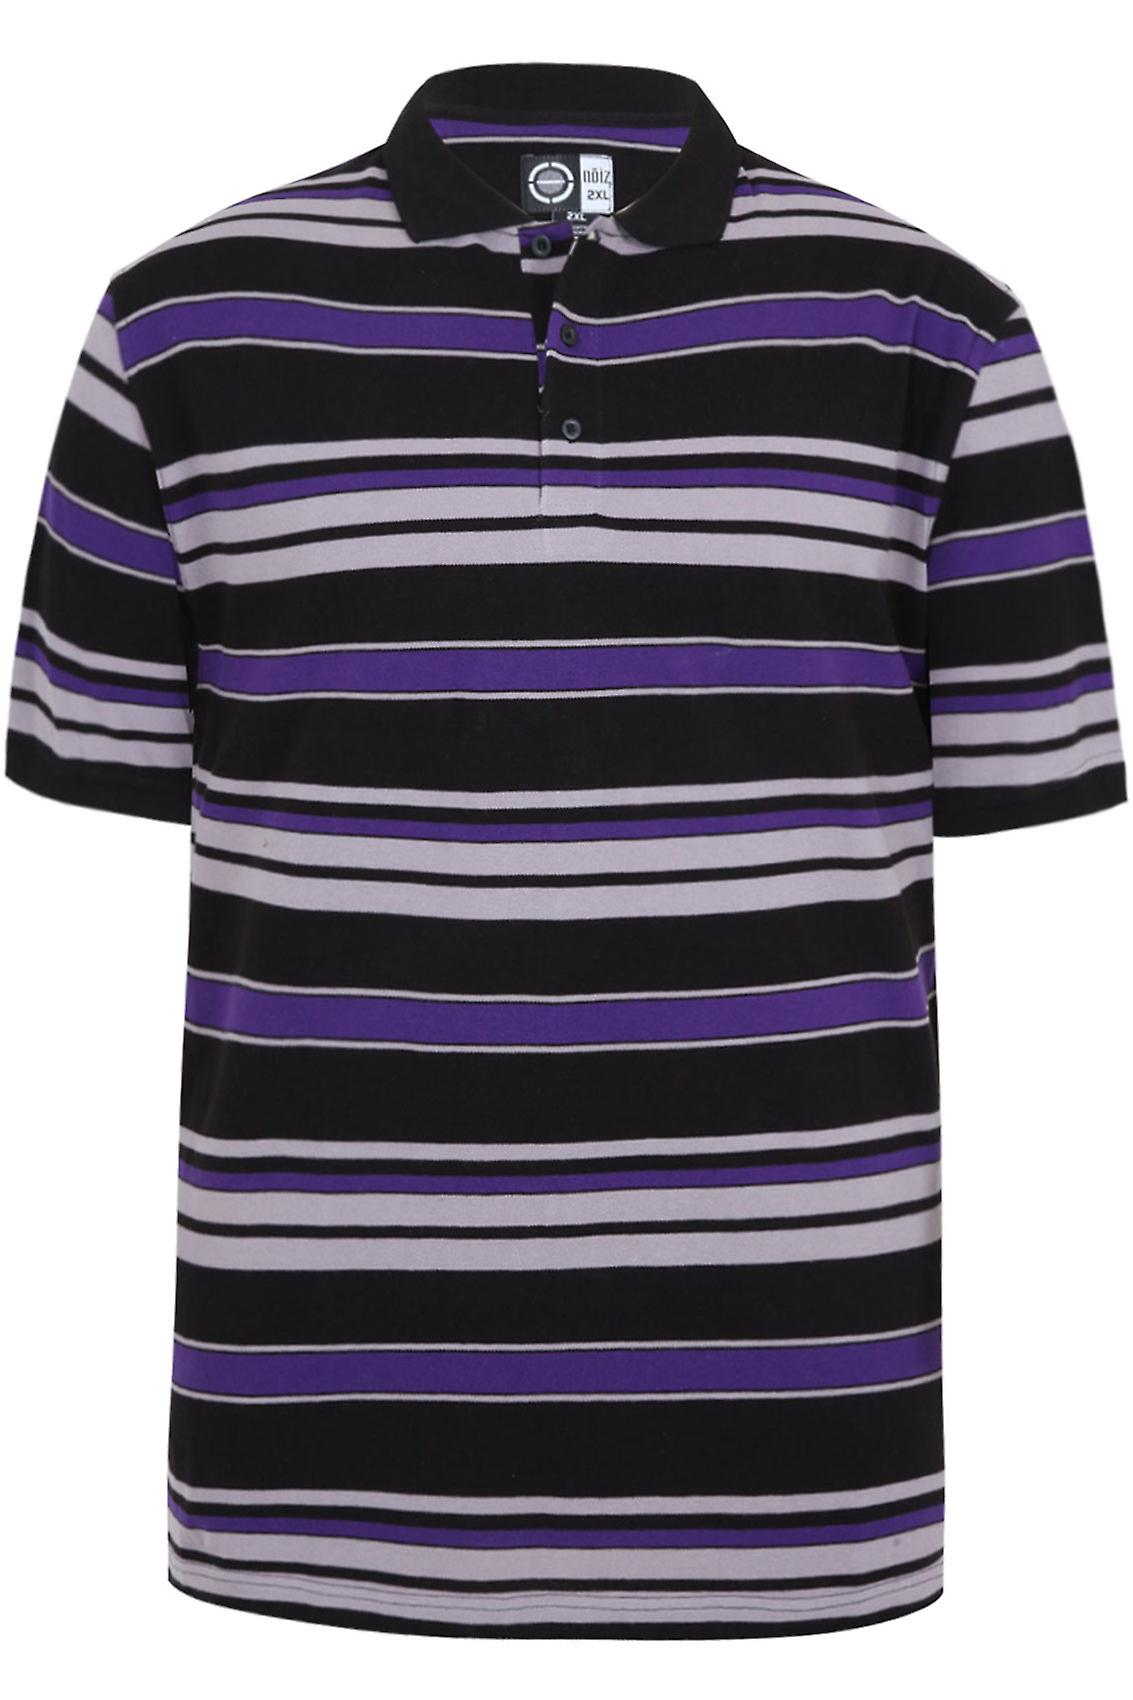 Black, Grey & Purple Stripe Short Sleeve Polo Shirt